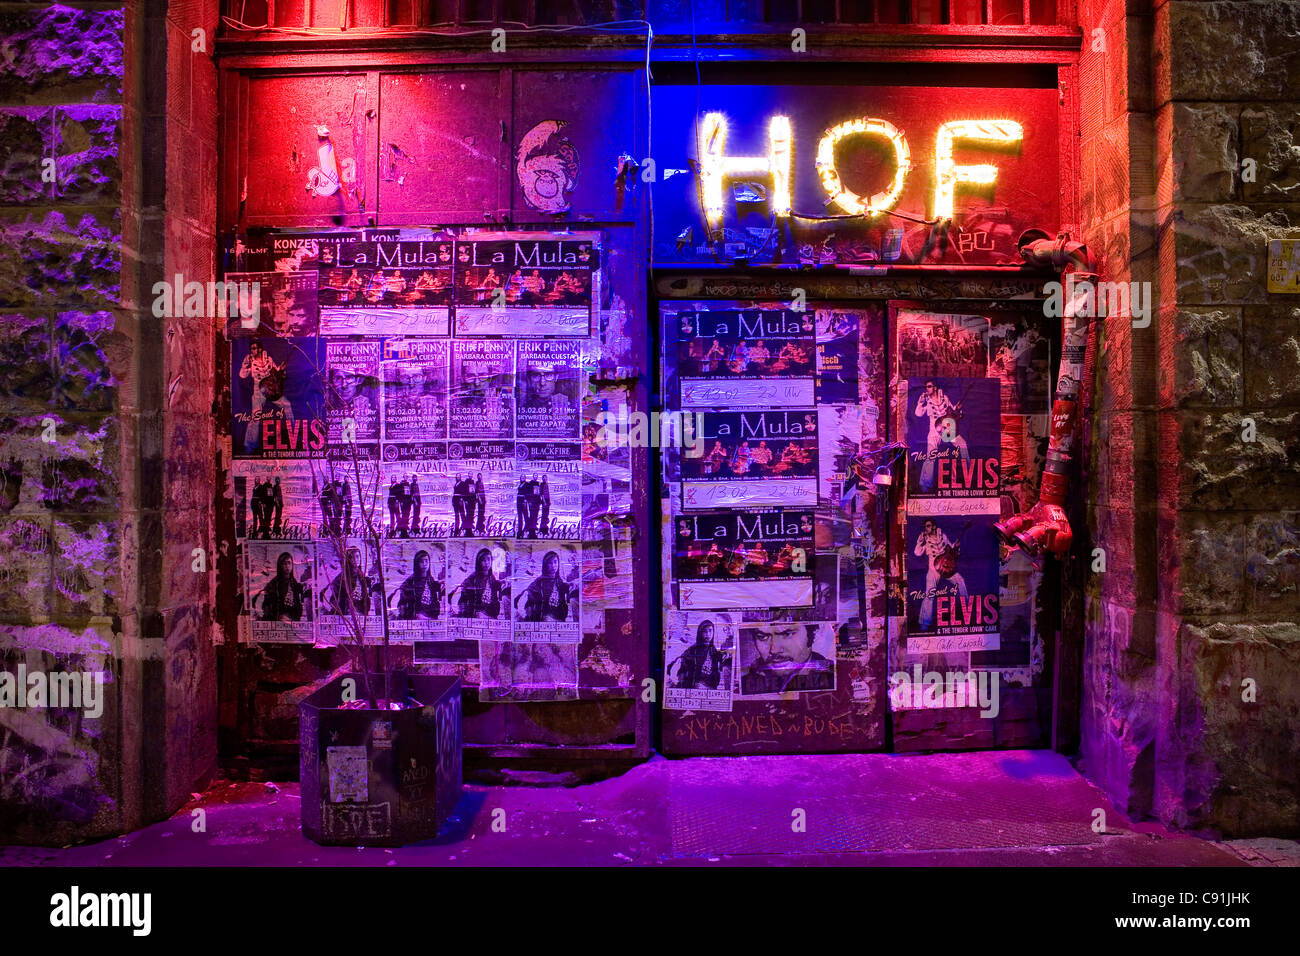 Entrance full of posters and billboards, Oranienburger Strasse, Berlin-Mitte, Berlin, Germany, Europe - Stock Image